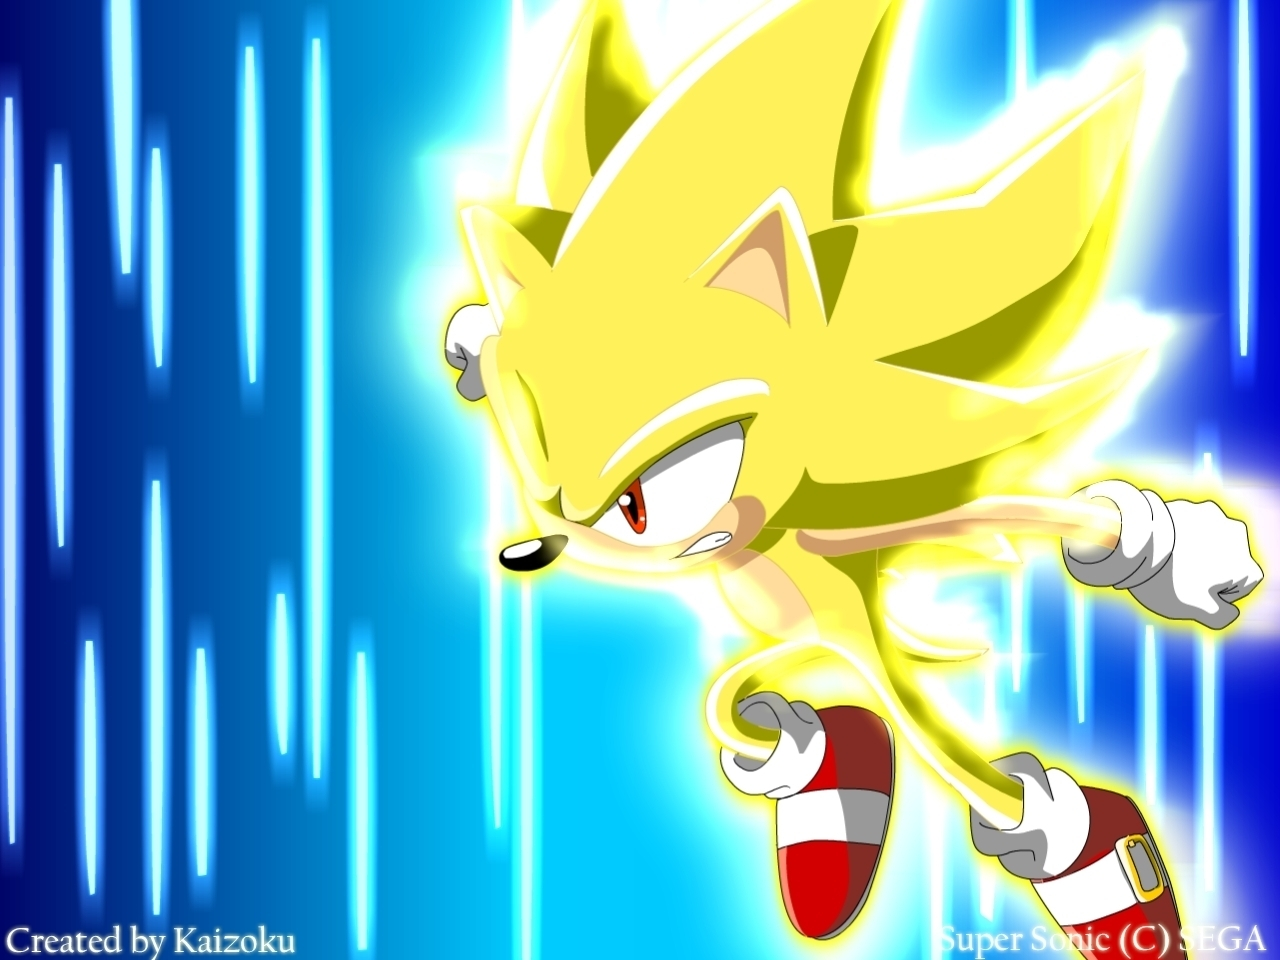 Super Sonic Wallpaper - SONIC X TV Wallpaper (20821281) - Fanpop ...